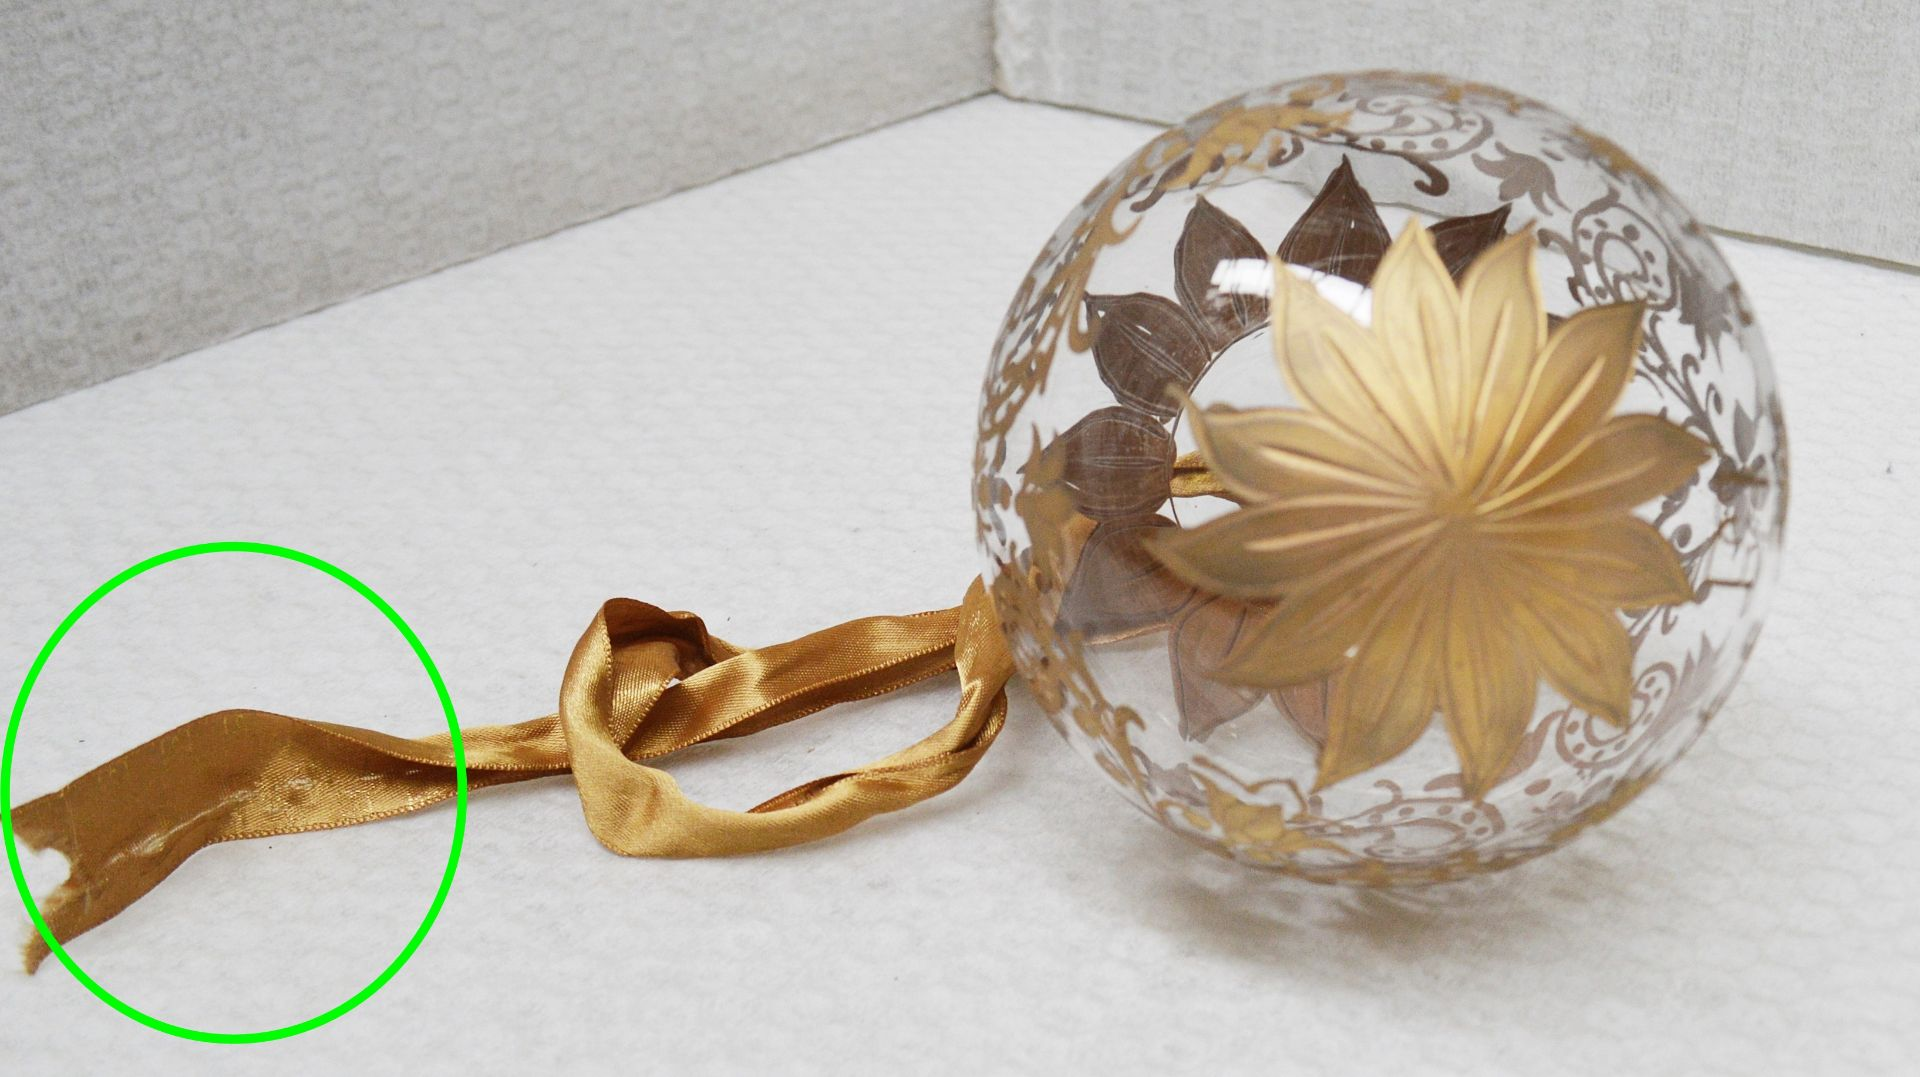 1 x BALDI 'Home Jewels' Italian Hand-crafted Artisan Christmas Tree Decoration In Gold - Dimensions: - Image 2 of 4